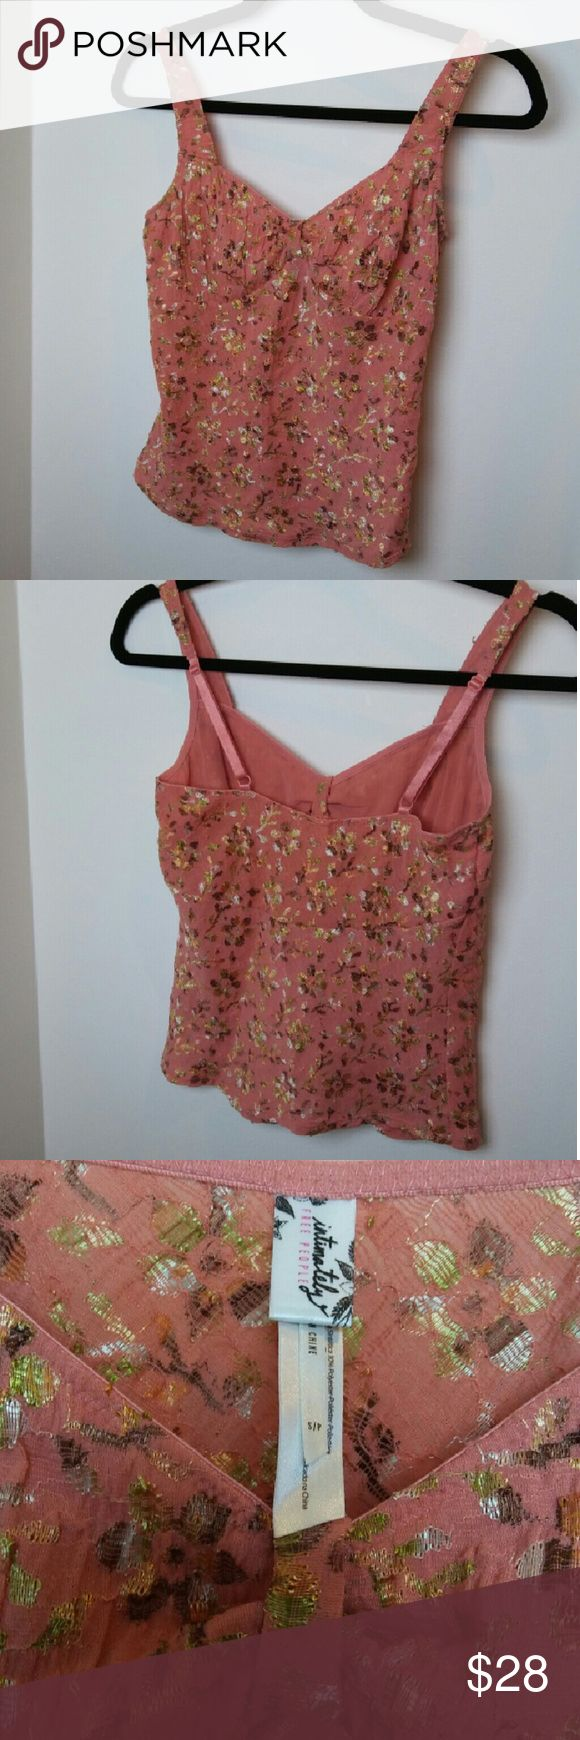 Free People Intimately sz. S floral cami Coral pink lace with gold foil floral overlay.  Perfect under layer for spring. 65% nylon, 30% polyester, 5% spandex. Made in China. Free People Tops Camisoles